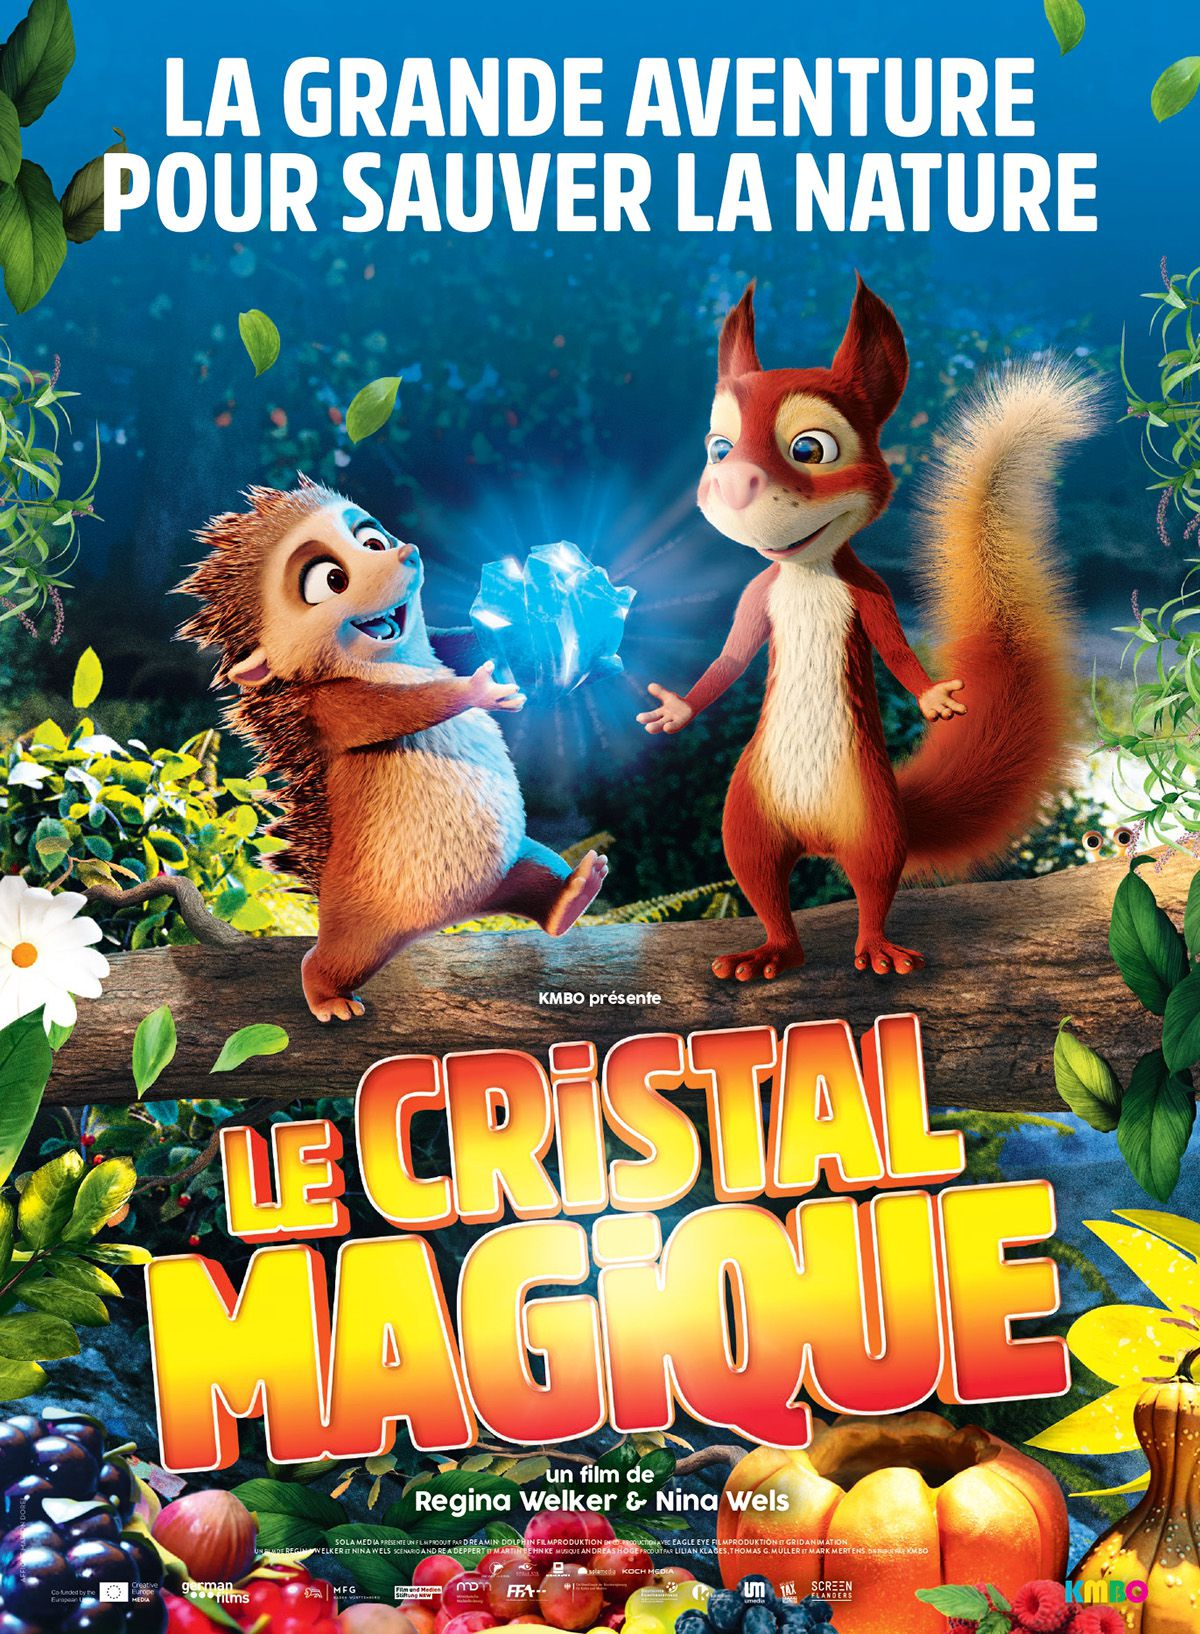 Le Cristal magique - Film (2019) streaming VF gratuit complet